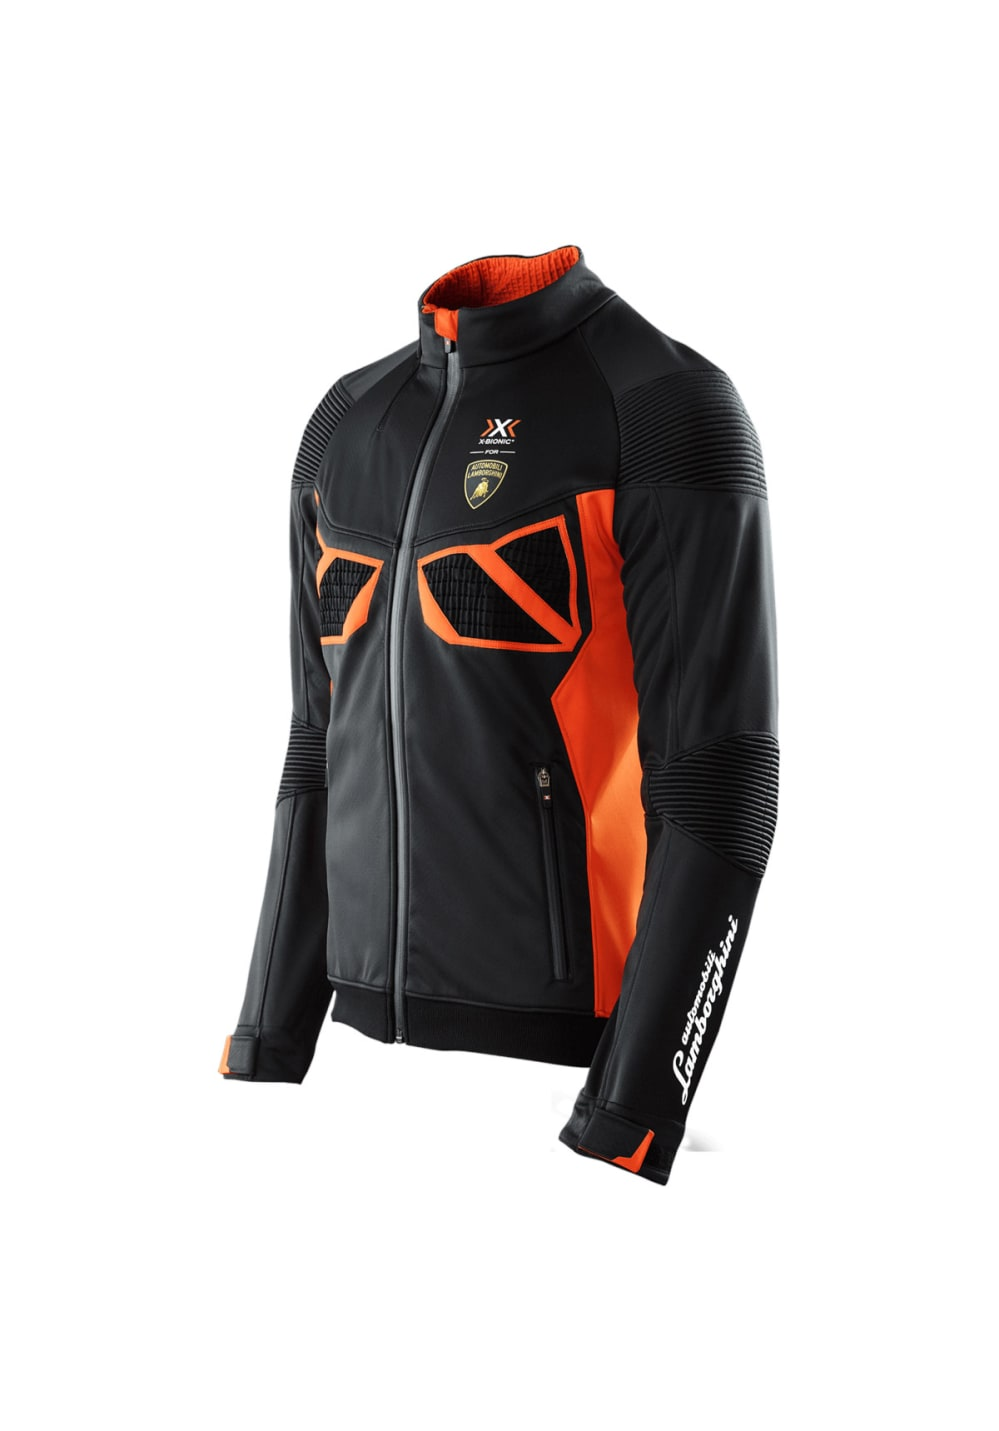 X-Bionic for Automobili Lamborghini Freeride Equilibrate Ow Jacket_FR Hommes Accessoires running